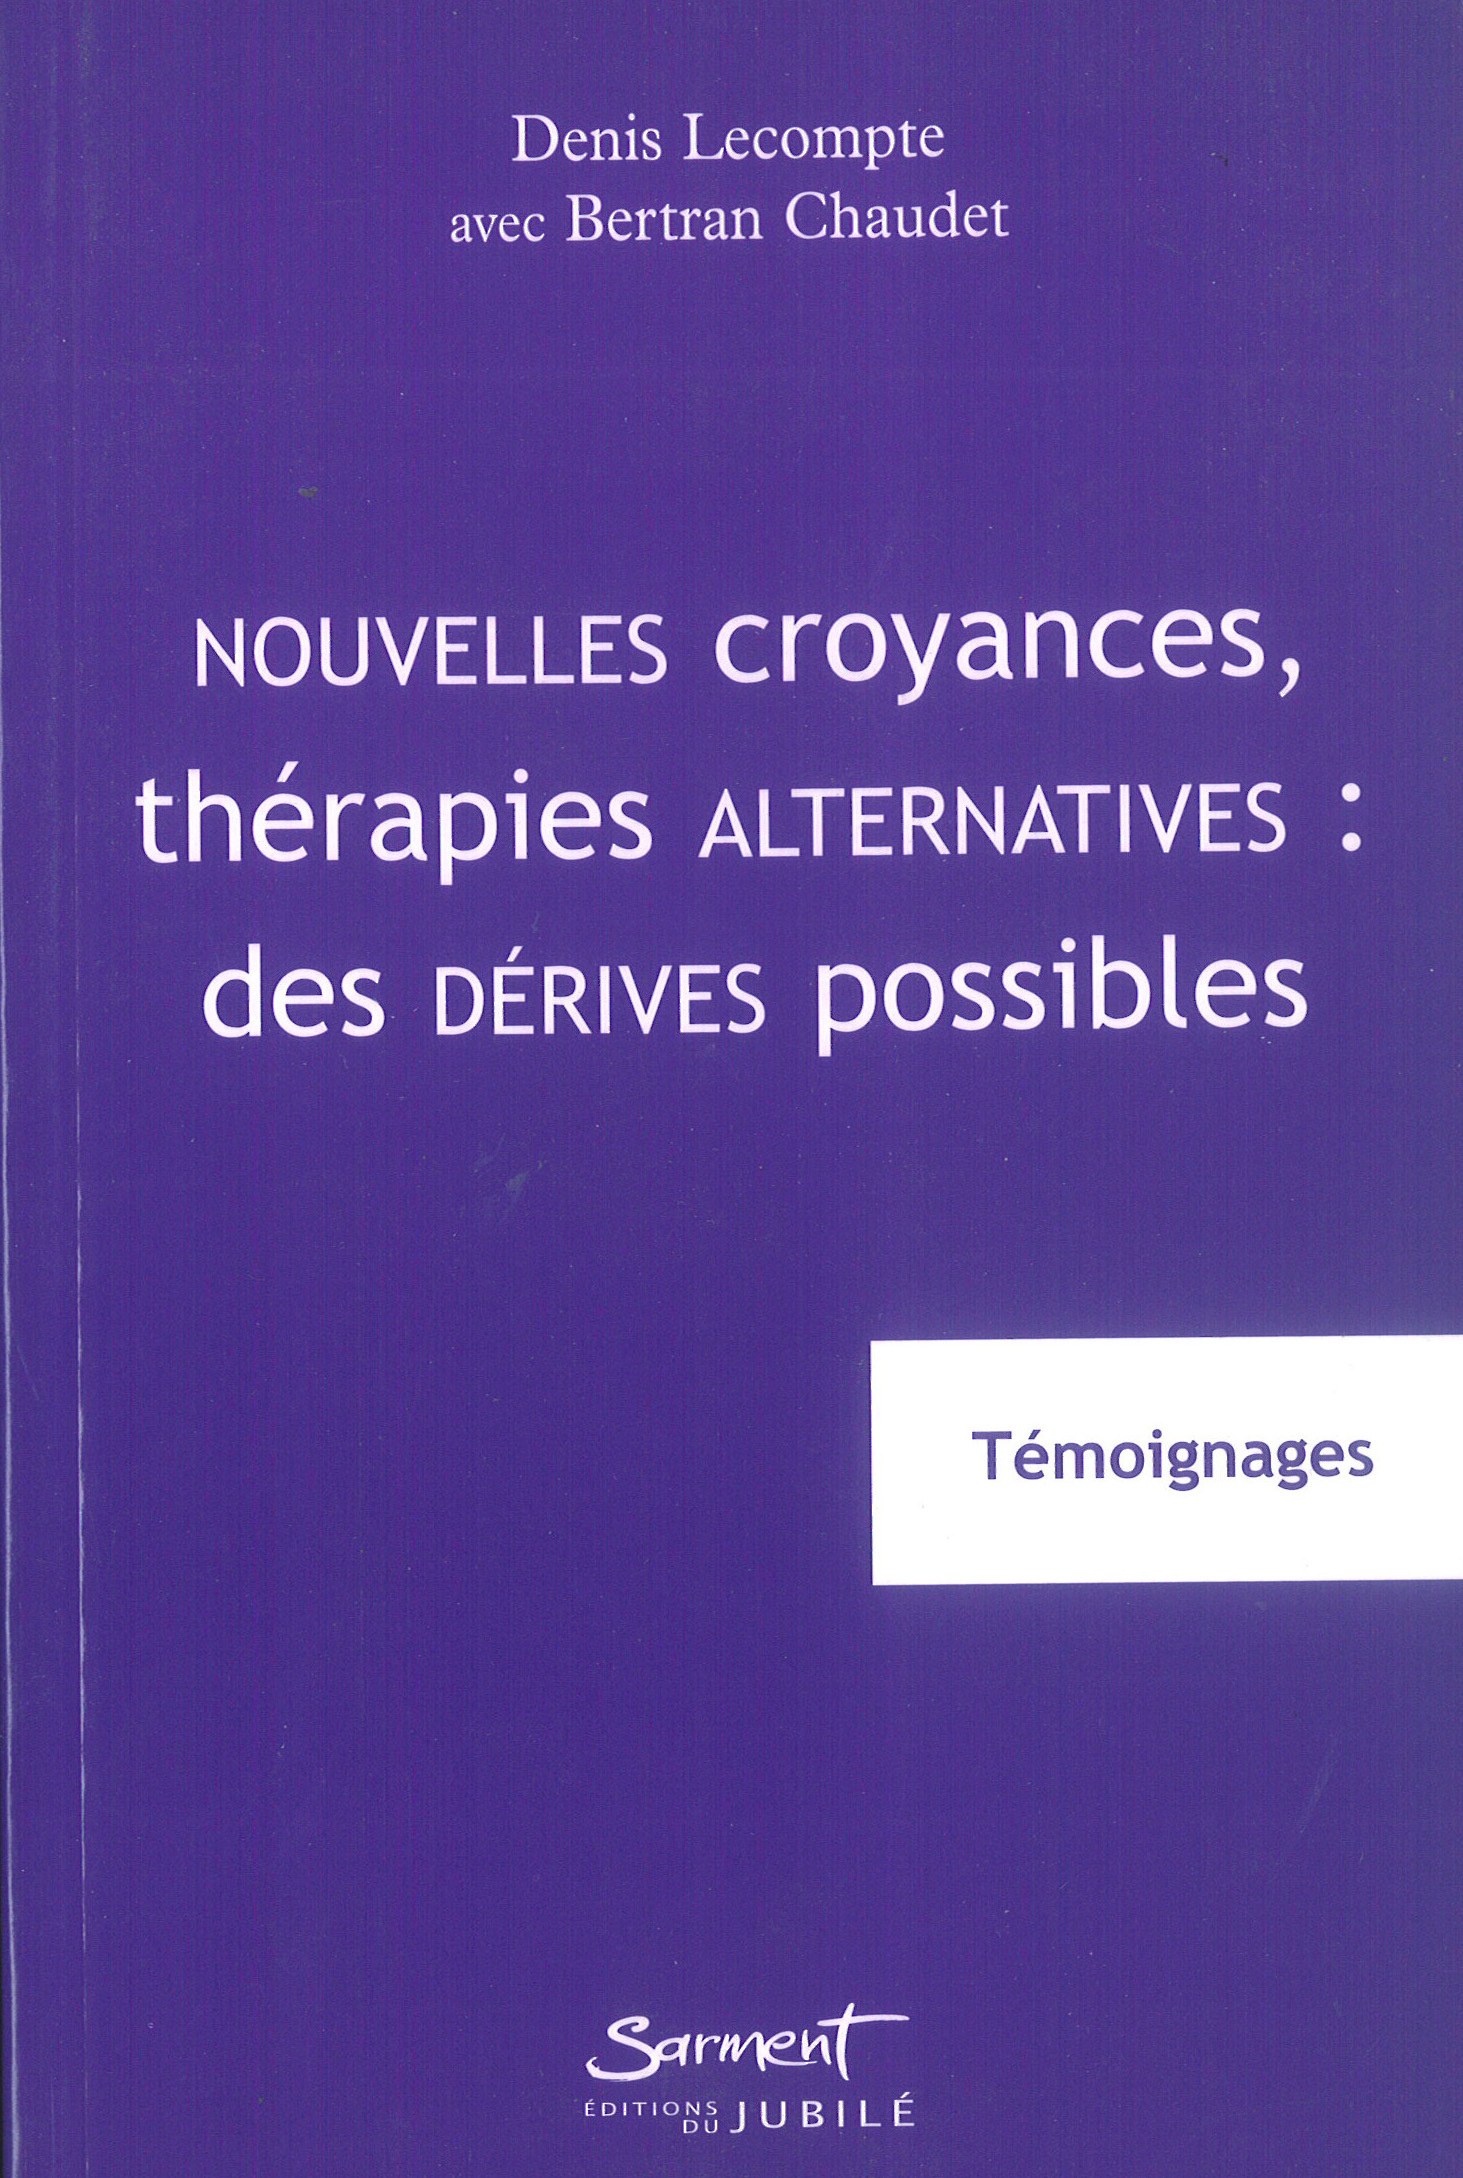 NOUVELLES CROYANCES, THERAPIES ALTERNATIVES : DES DERIVES POSSIBLES - TEMOIGNAGES